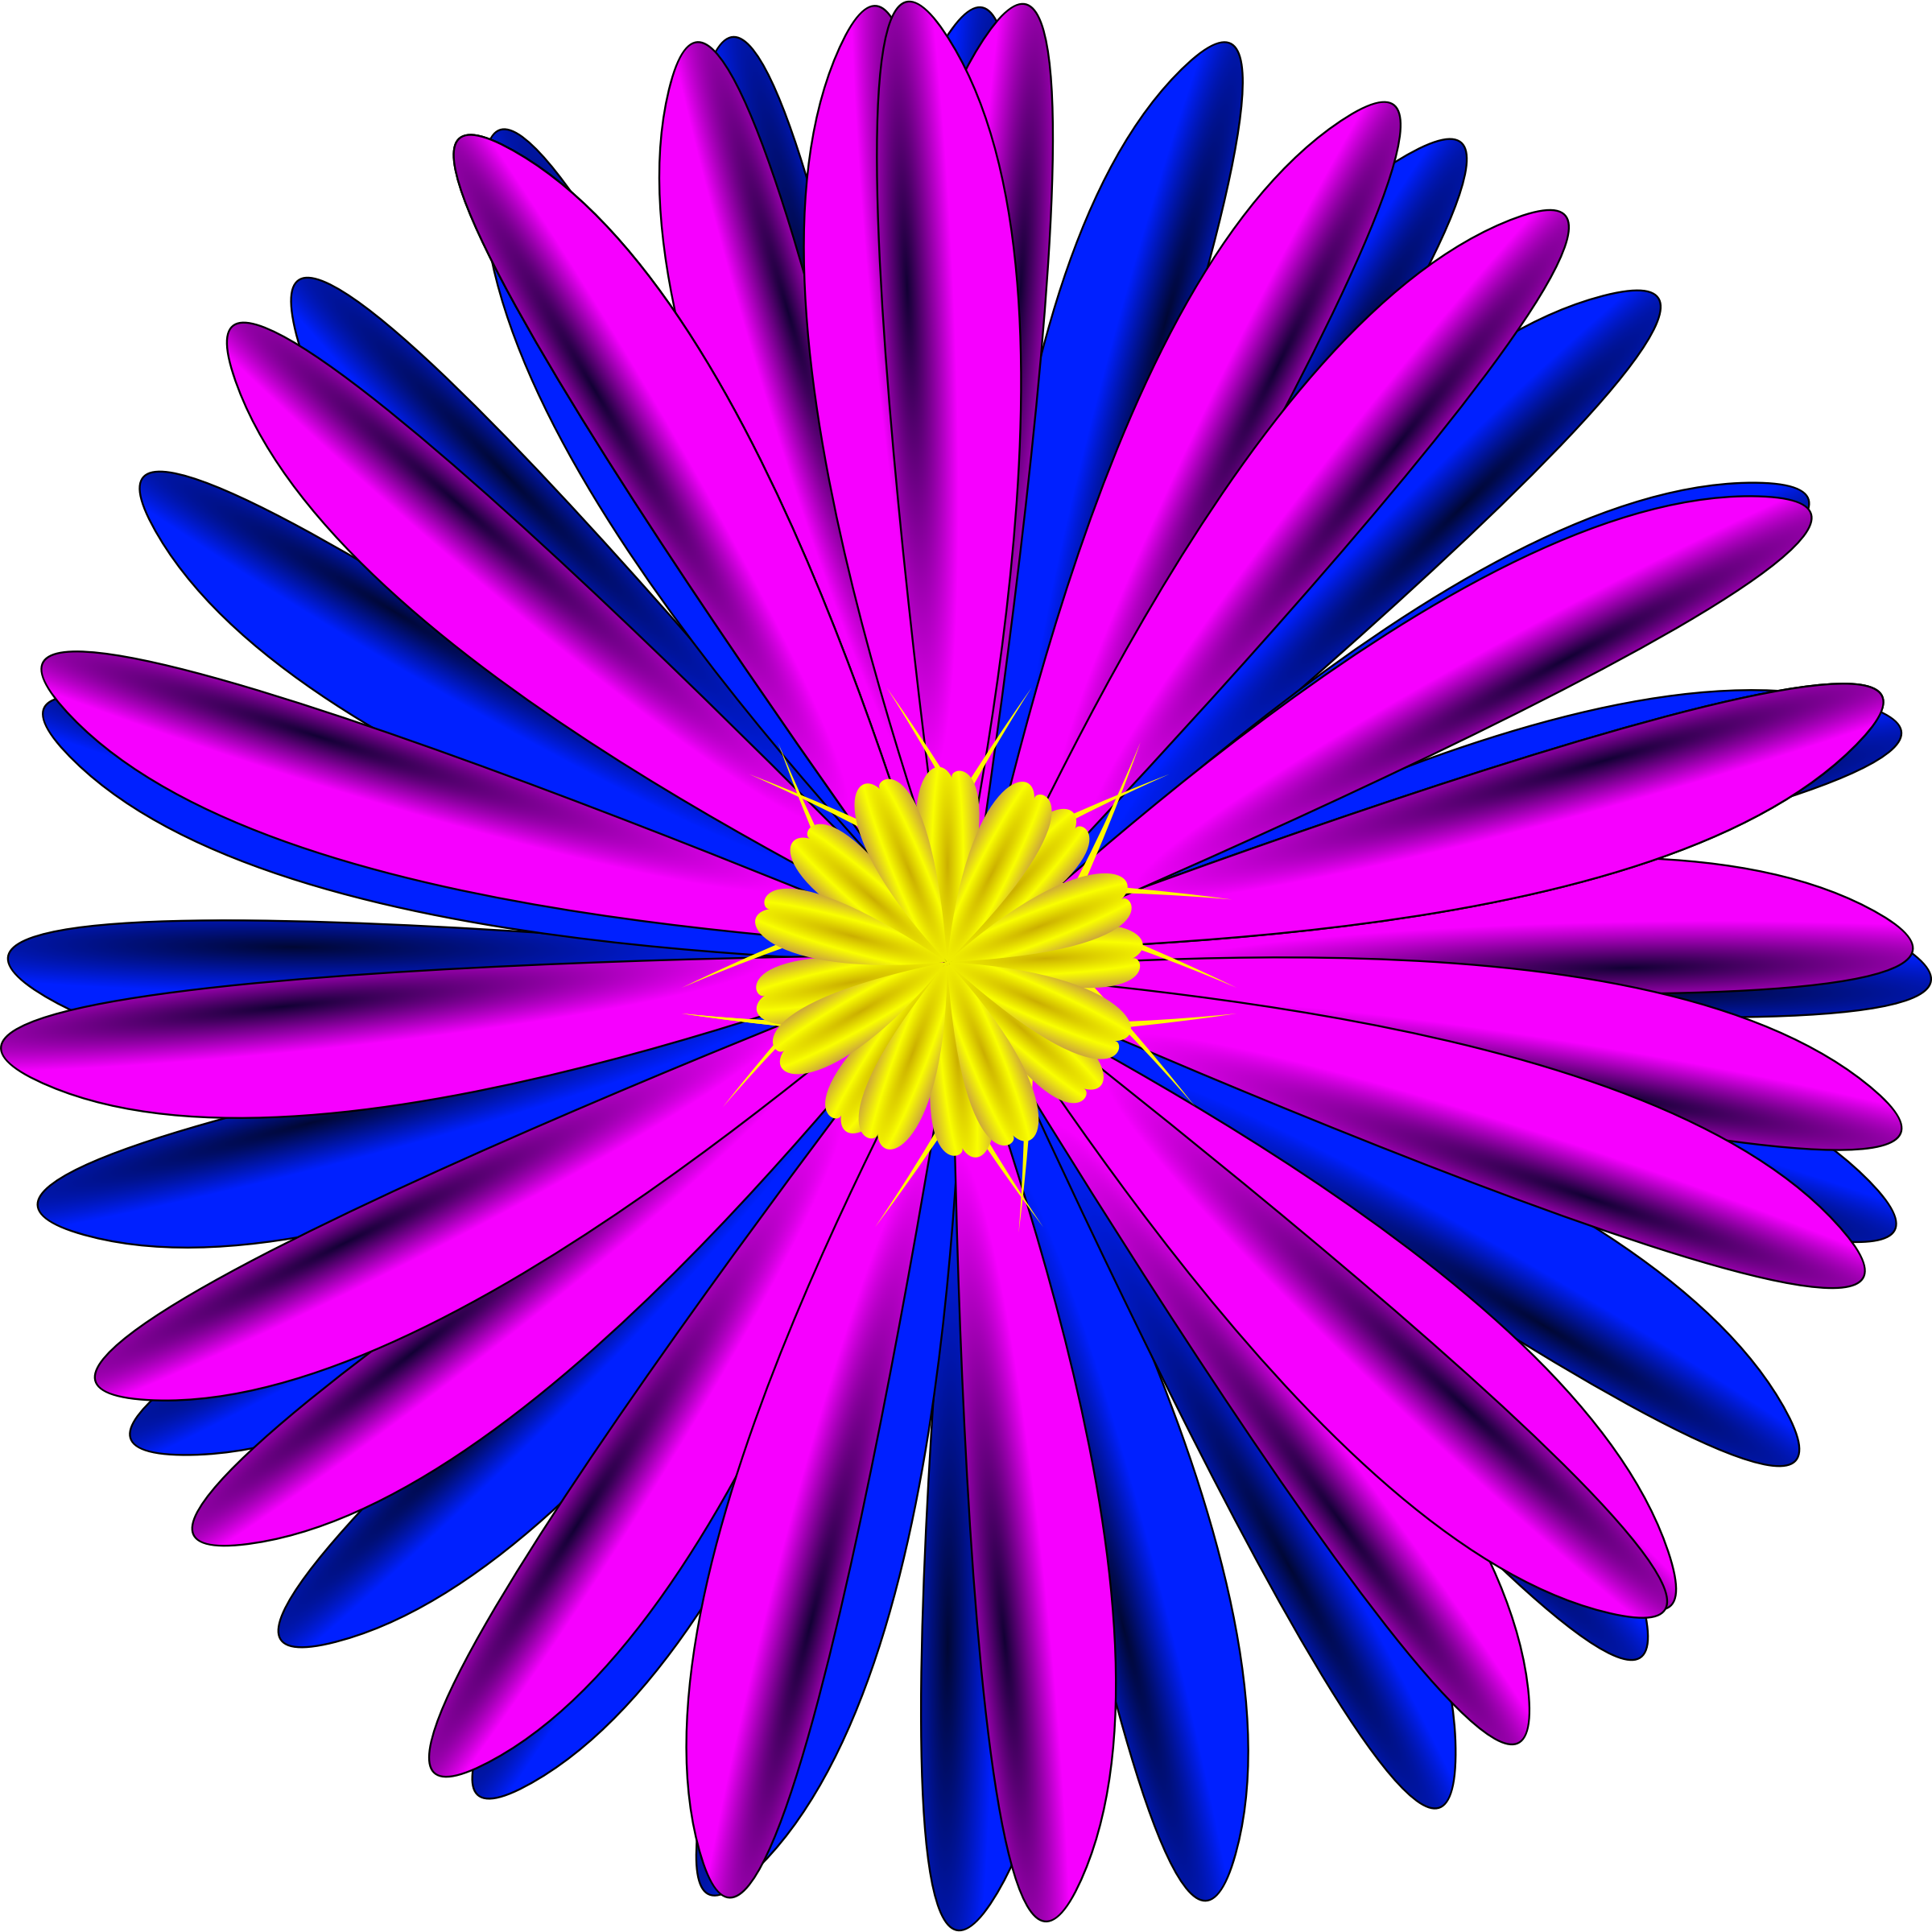 Blue and purple flower clipart graphic transparent Clipart - Pink and Blue Flower graphic transparent